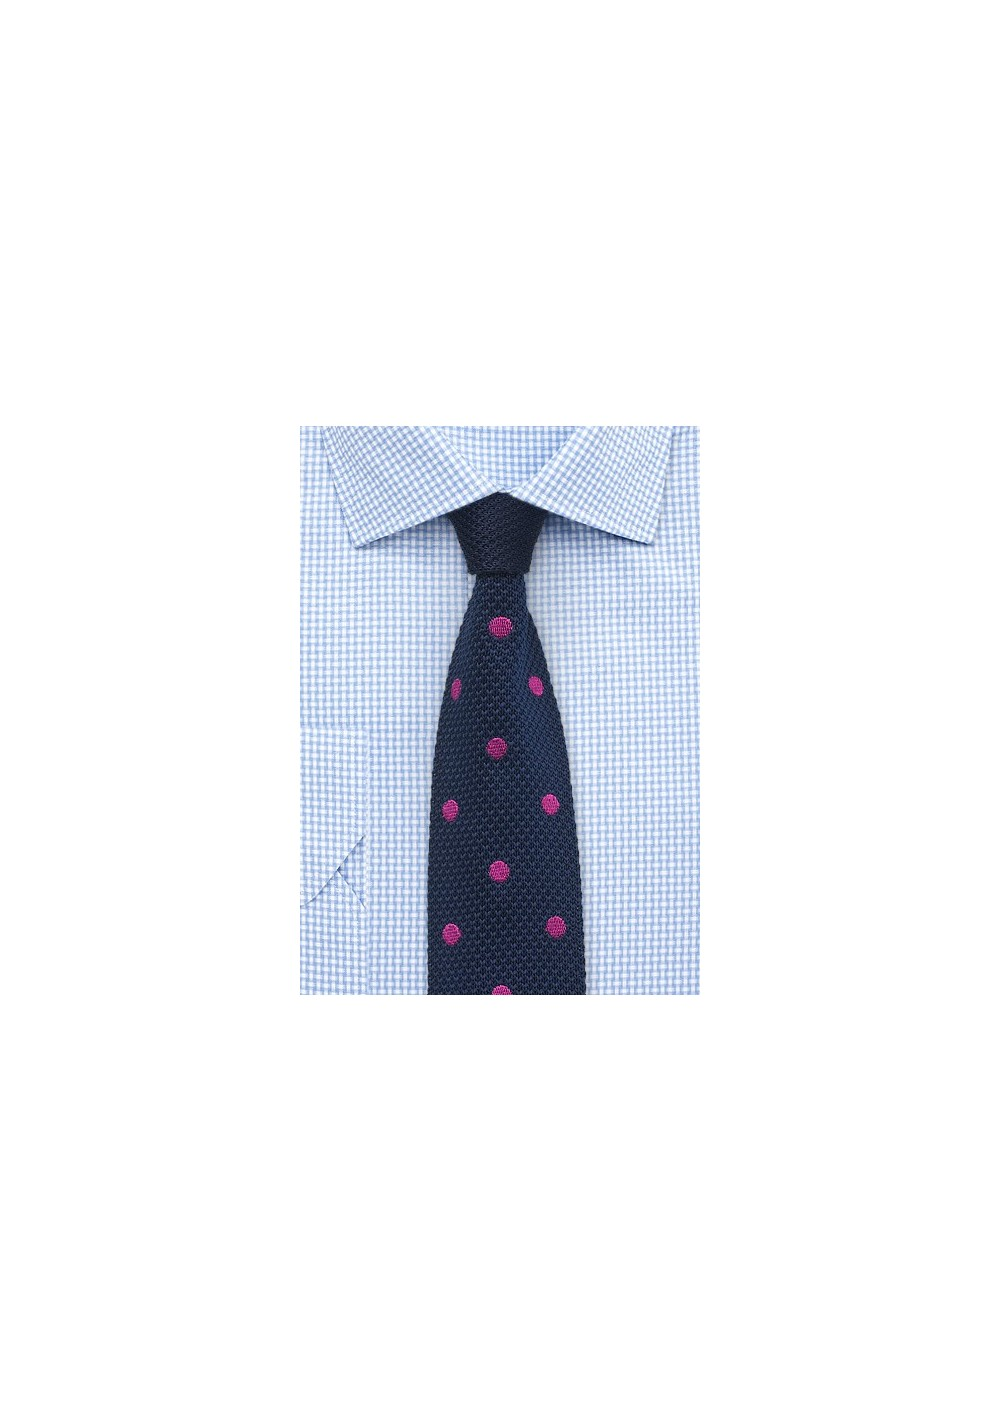 Blue Knit Tie with Pink Polka Dots